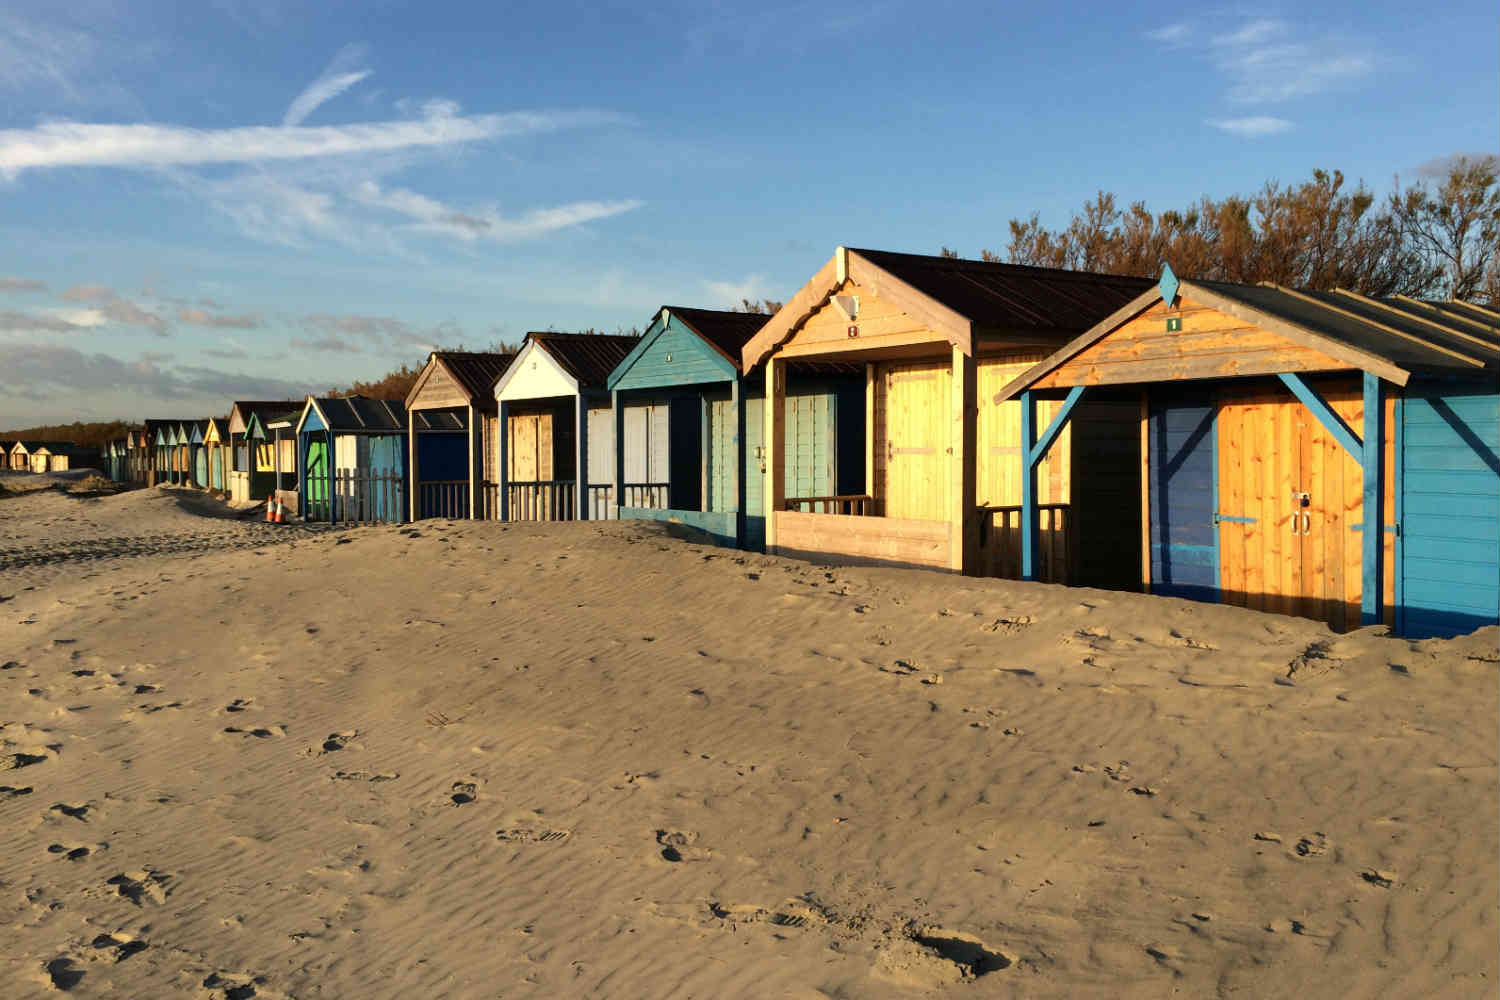 Sandy beach and huts at West Wittetring